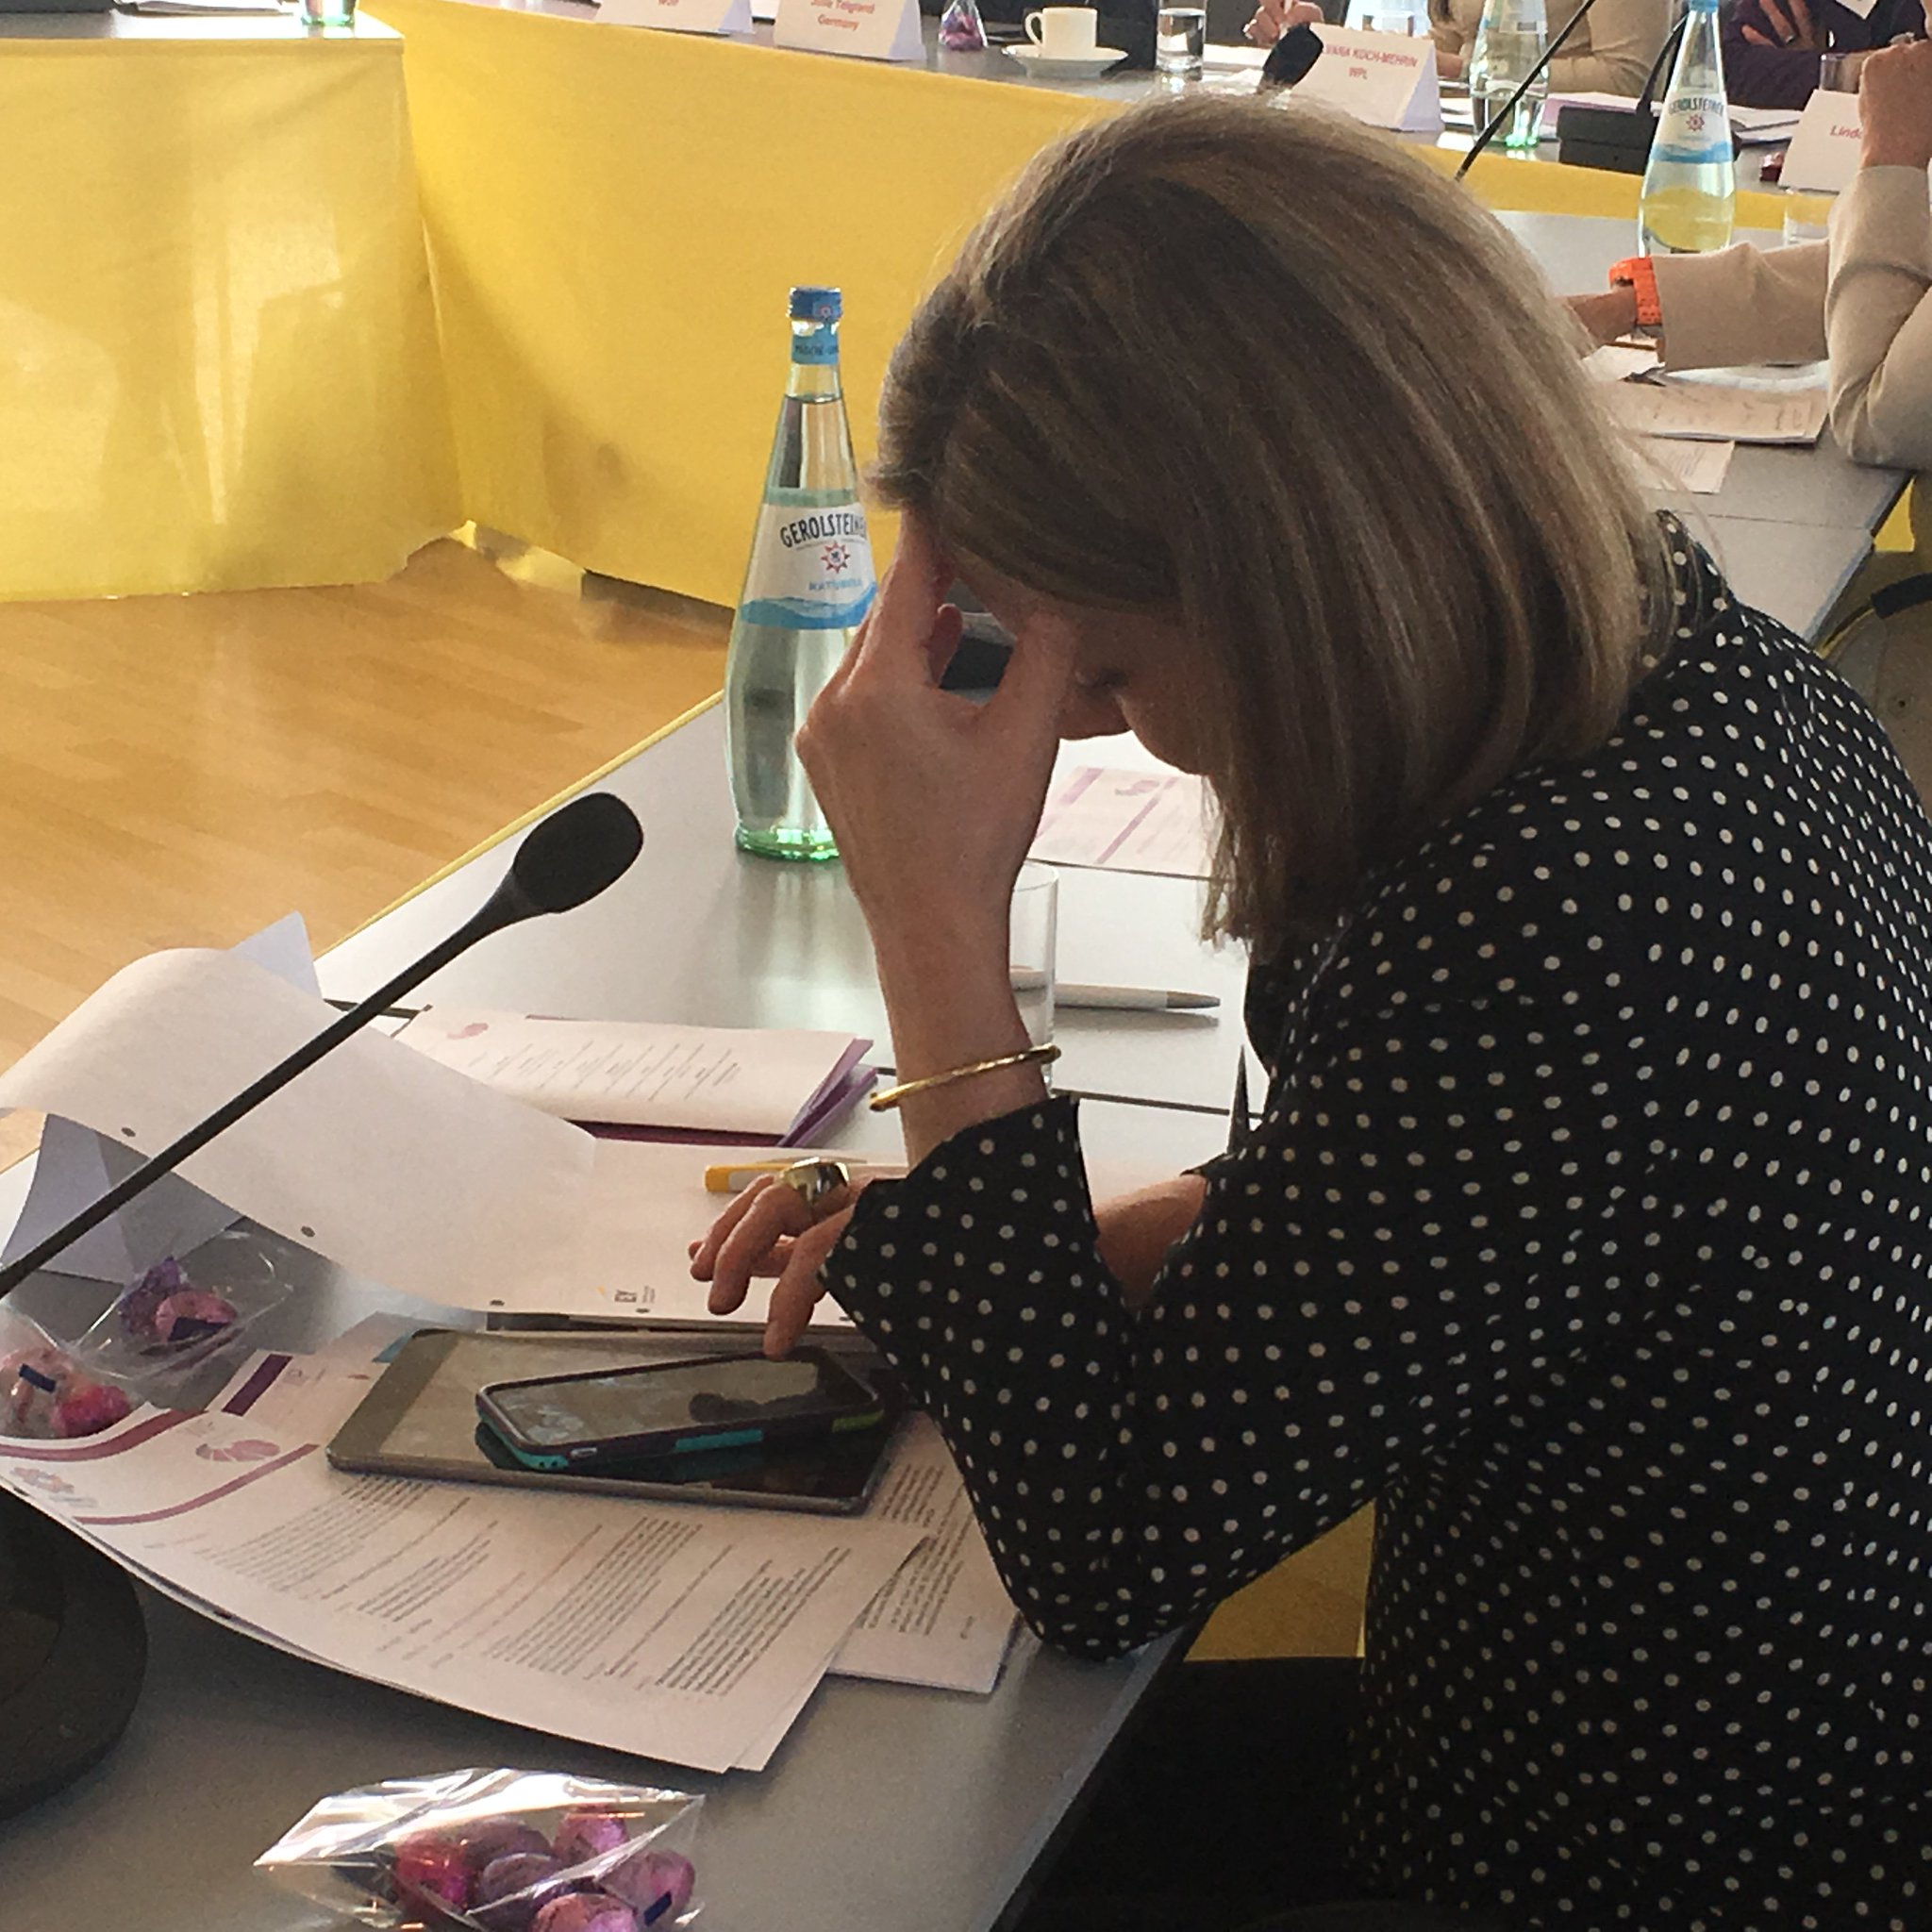 When #WomenPoliticalLeaders discuss #G20Digital, obviously they bring BOTH their #smartphone AND their #tablet 😀  https://t.co/3JPXJZokLn https://t.co/2SpipV97gV